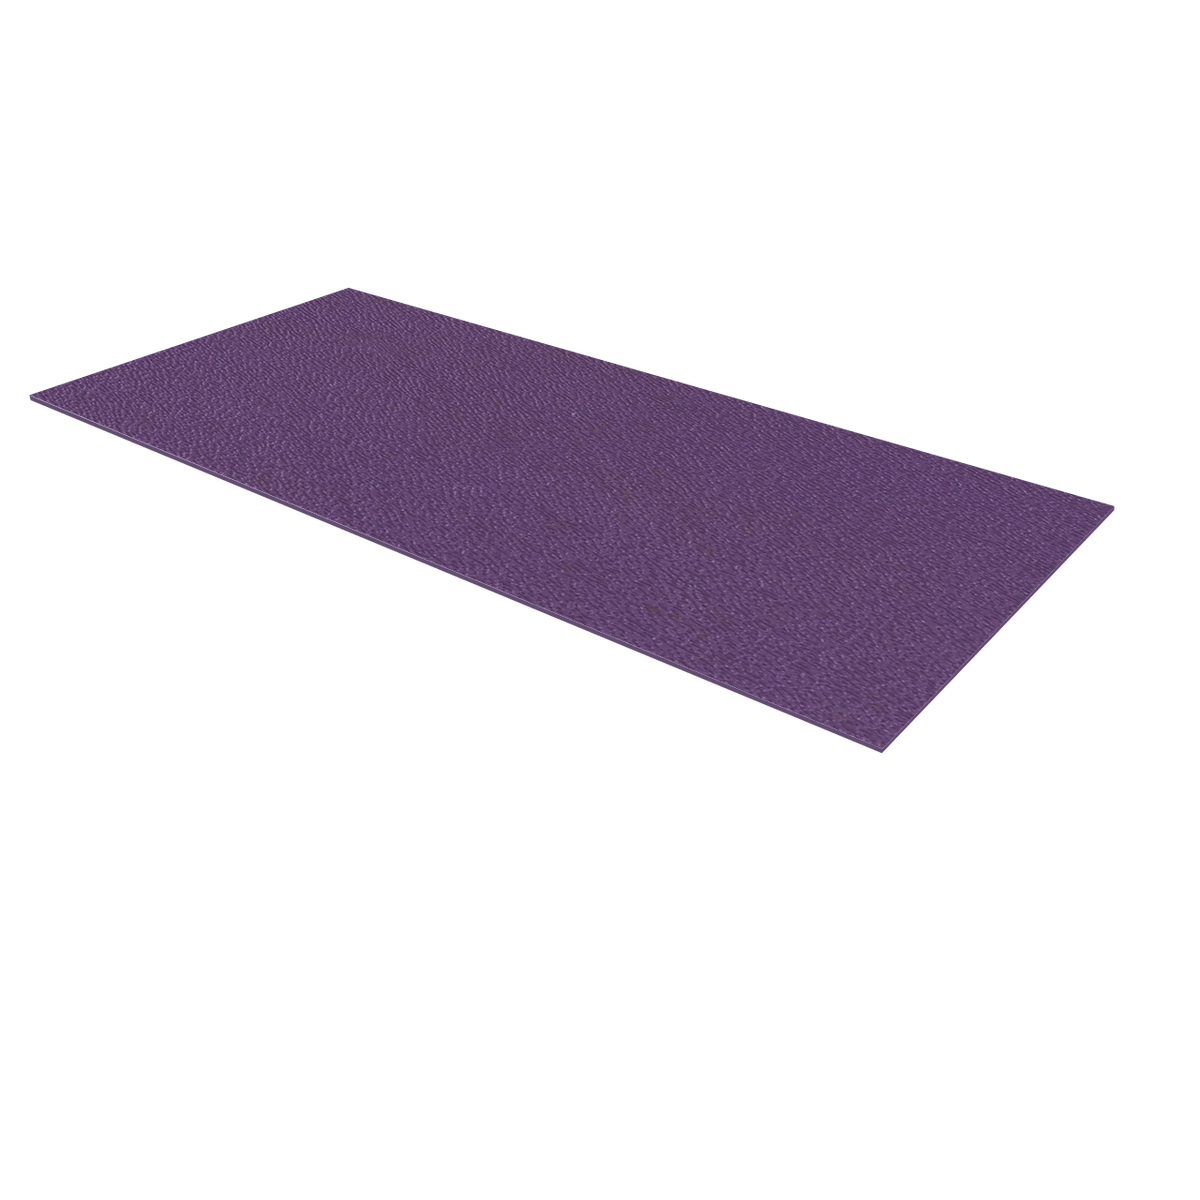 ABS Plastic Sheet - Purple